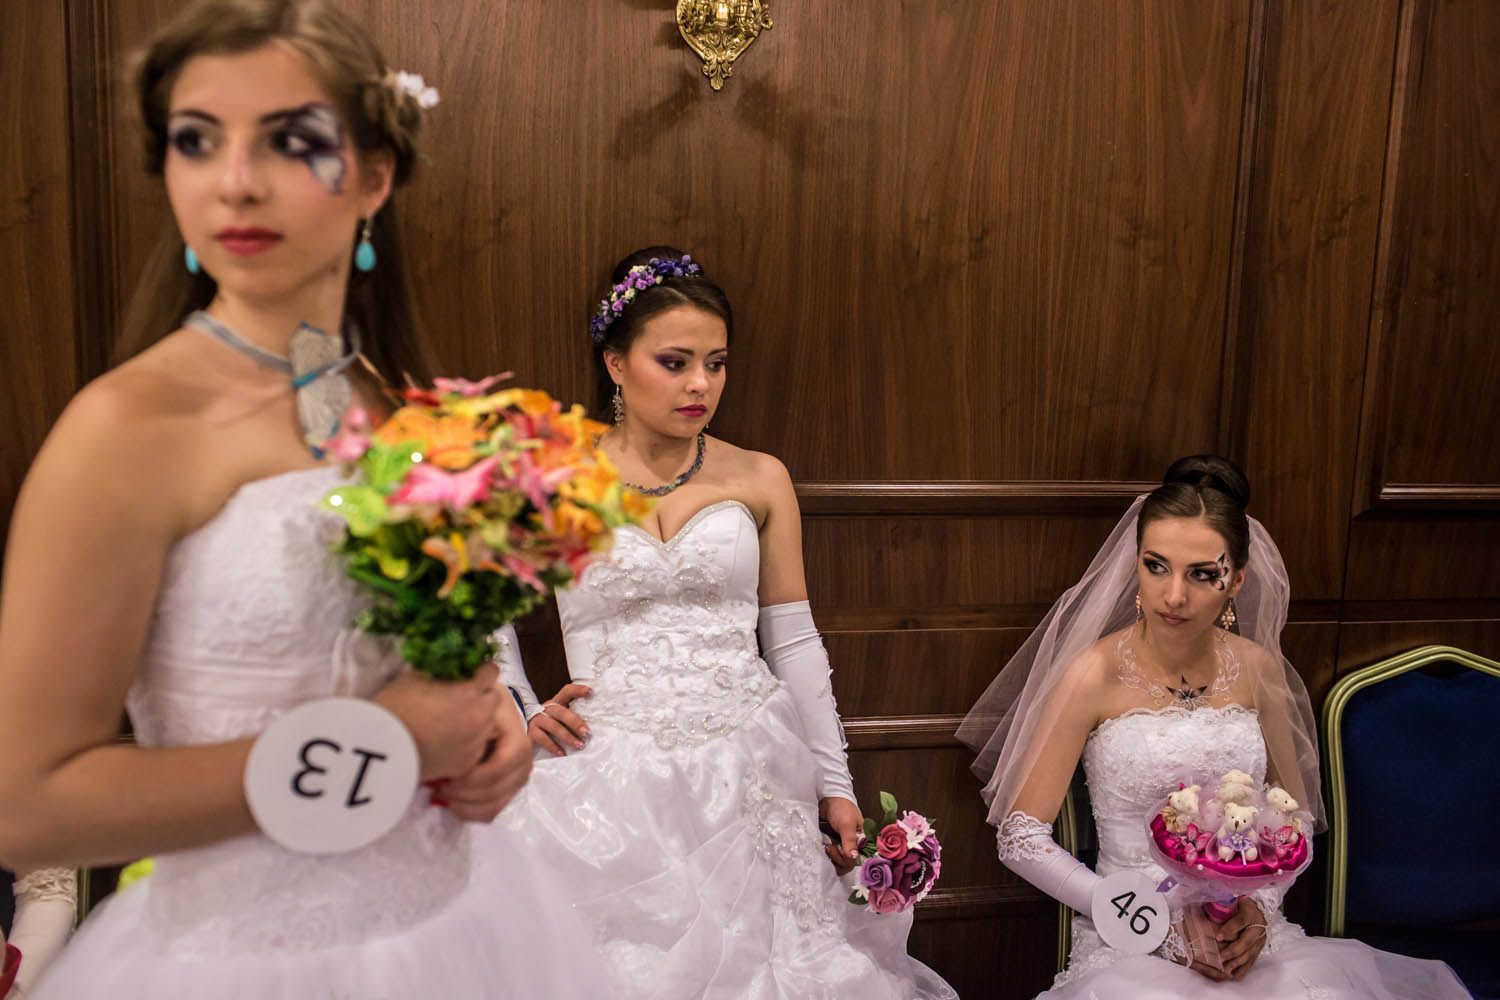 May 18, 2014. Contestants at a bridal contest wait backstage in Donetsk, Ukraine. A week before presidential elections are scheduled, questions remain whether the eastern regions of Donetsk and Luhansk are stable enough to administer the vote.